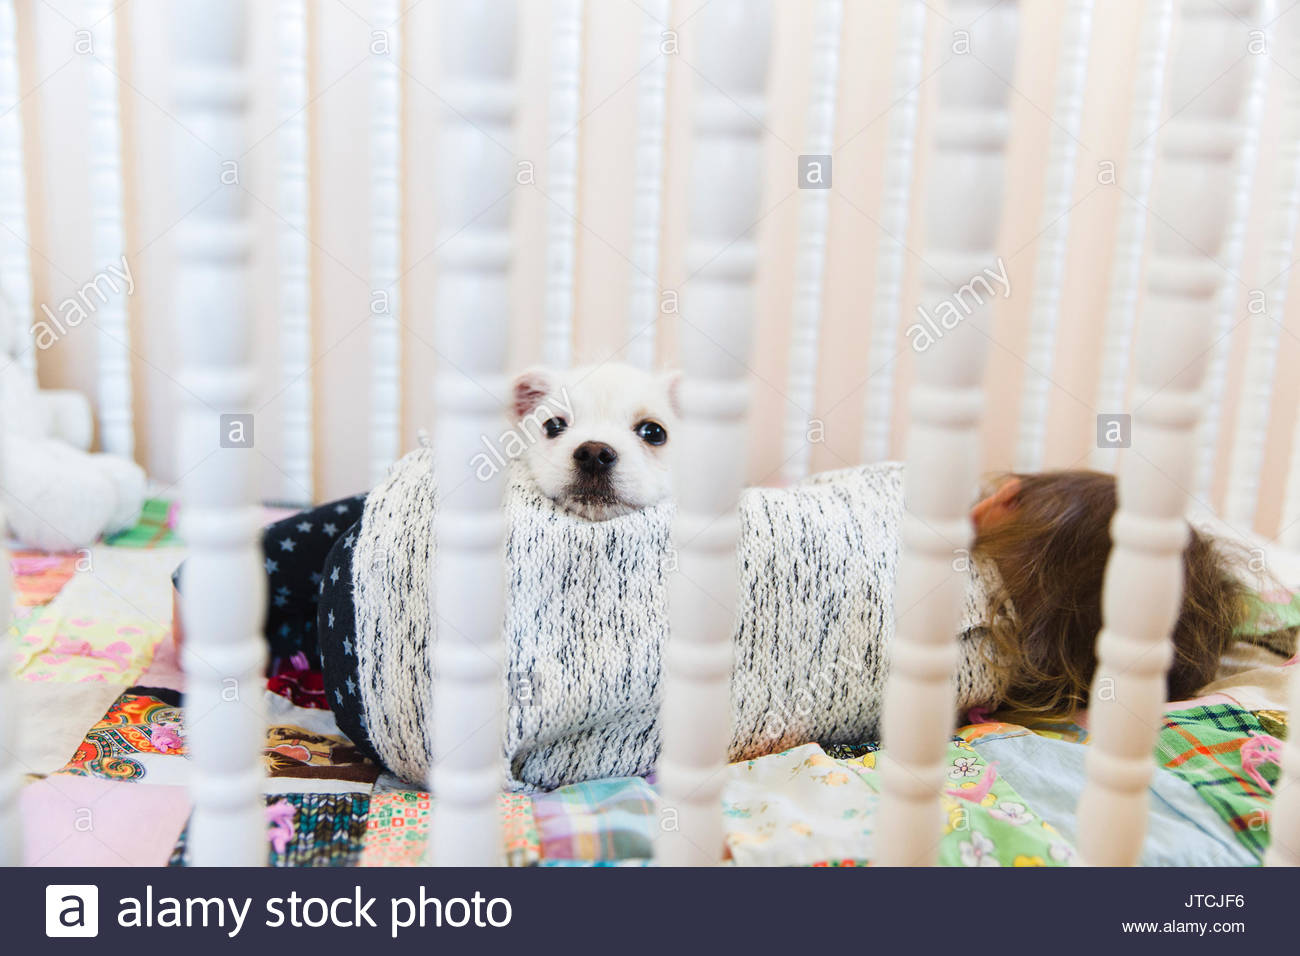 A puppy and a baby lying on a patchwork quilt in a cot. - Stock Image